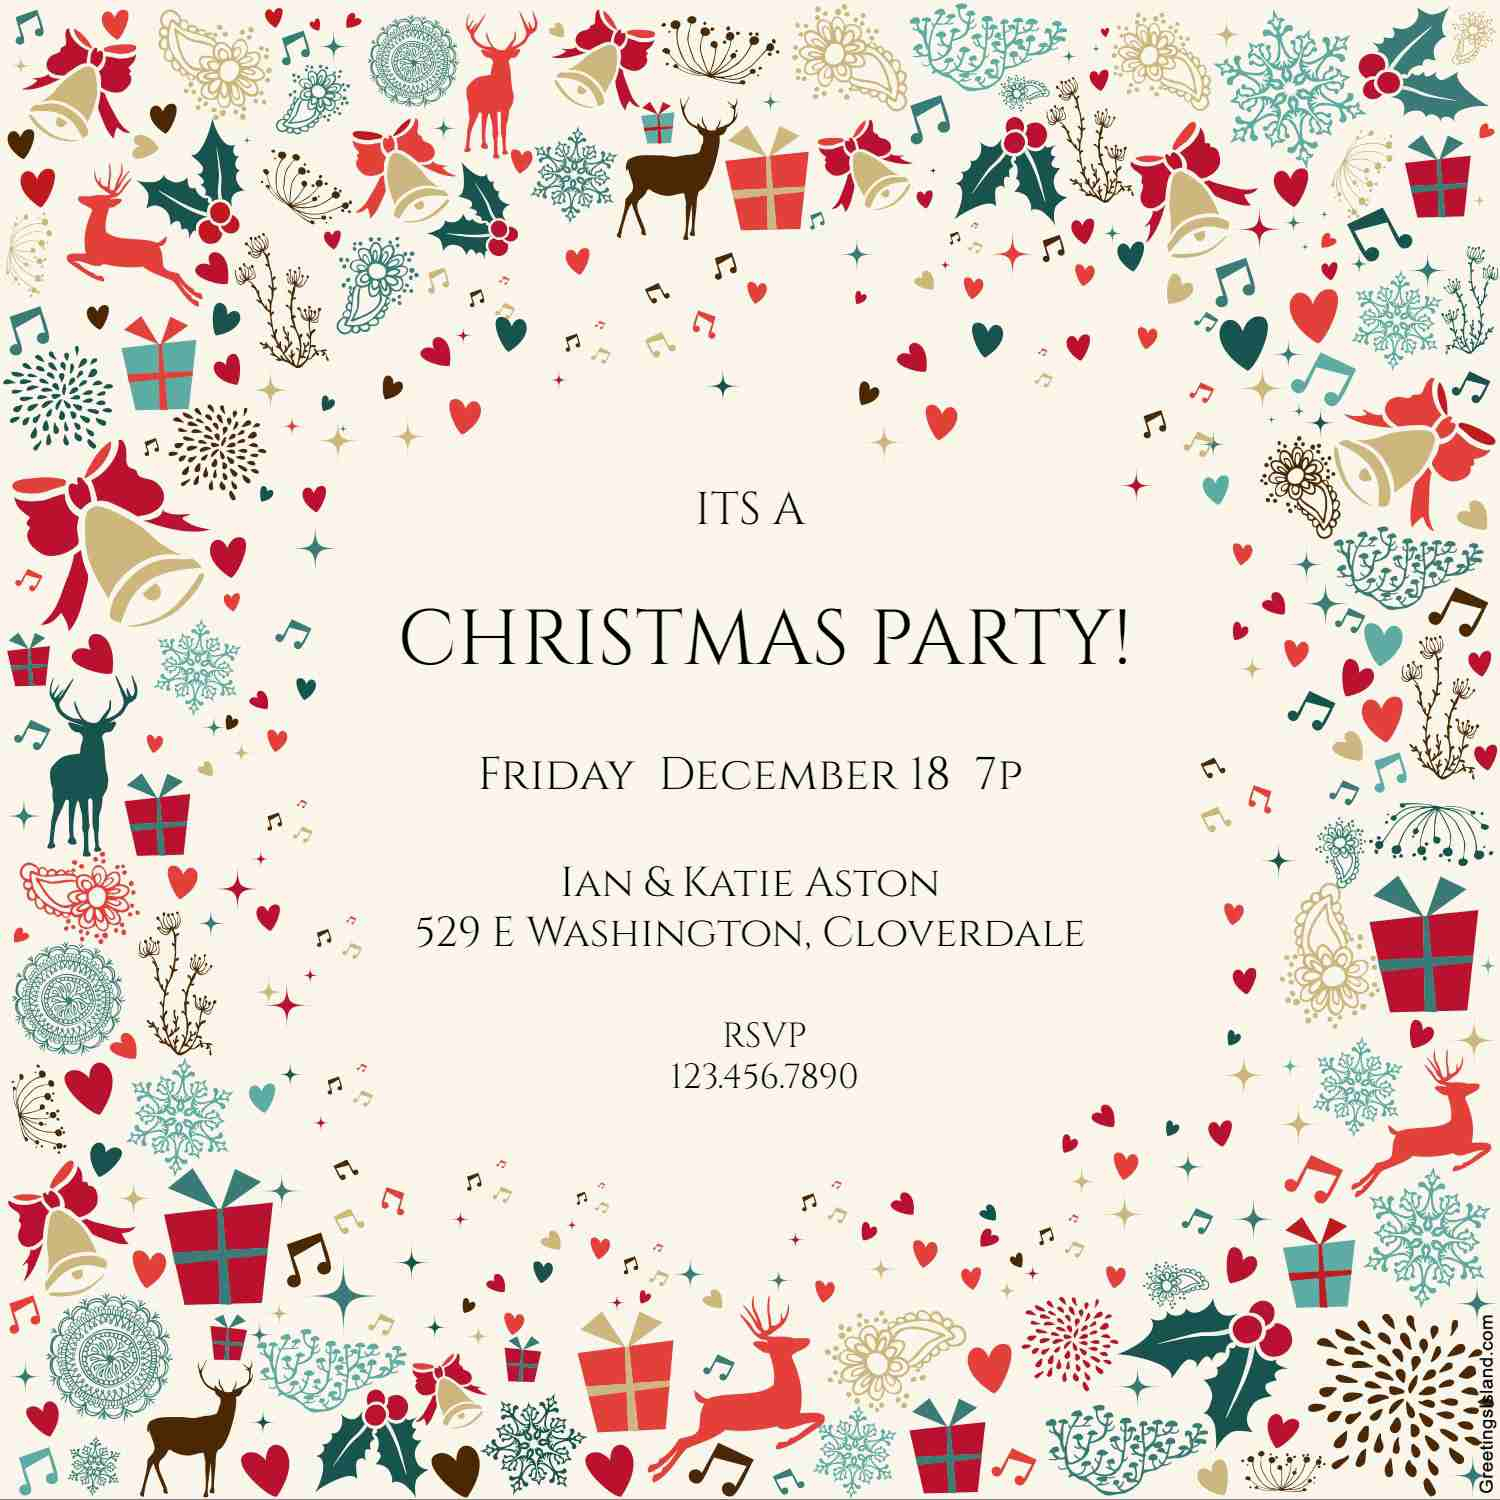 10 Free Christmas Party Invitations That You Can Print - Free Printable Christmas Party Flyer Templates